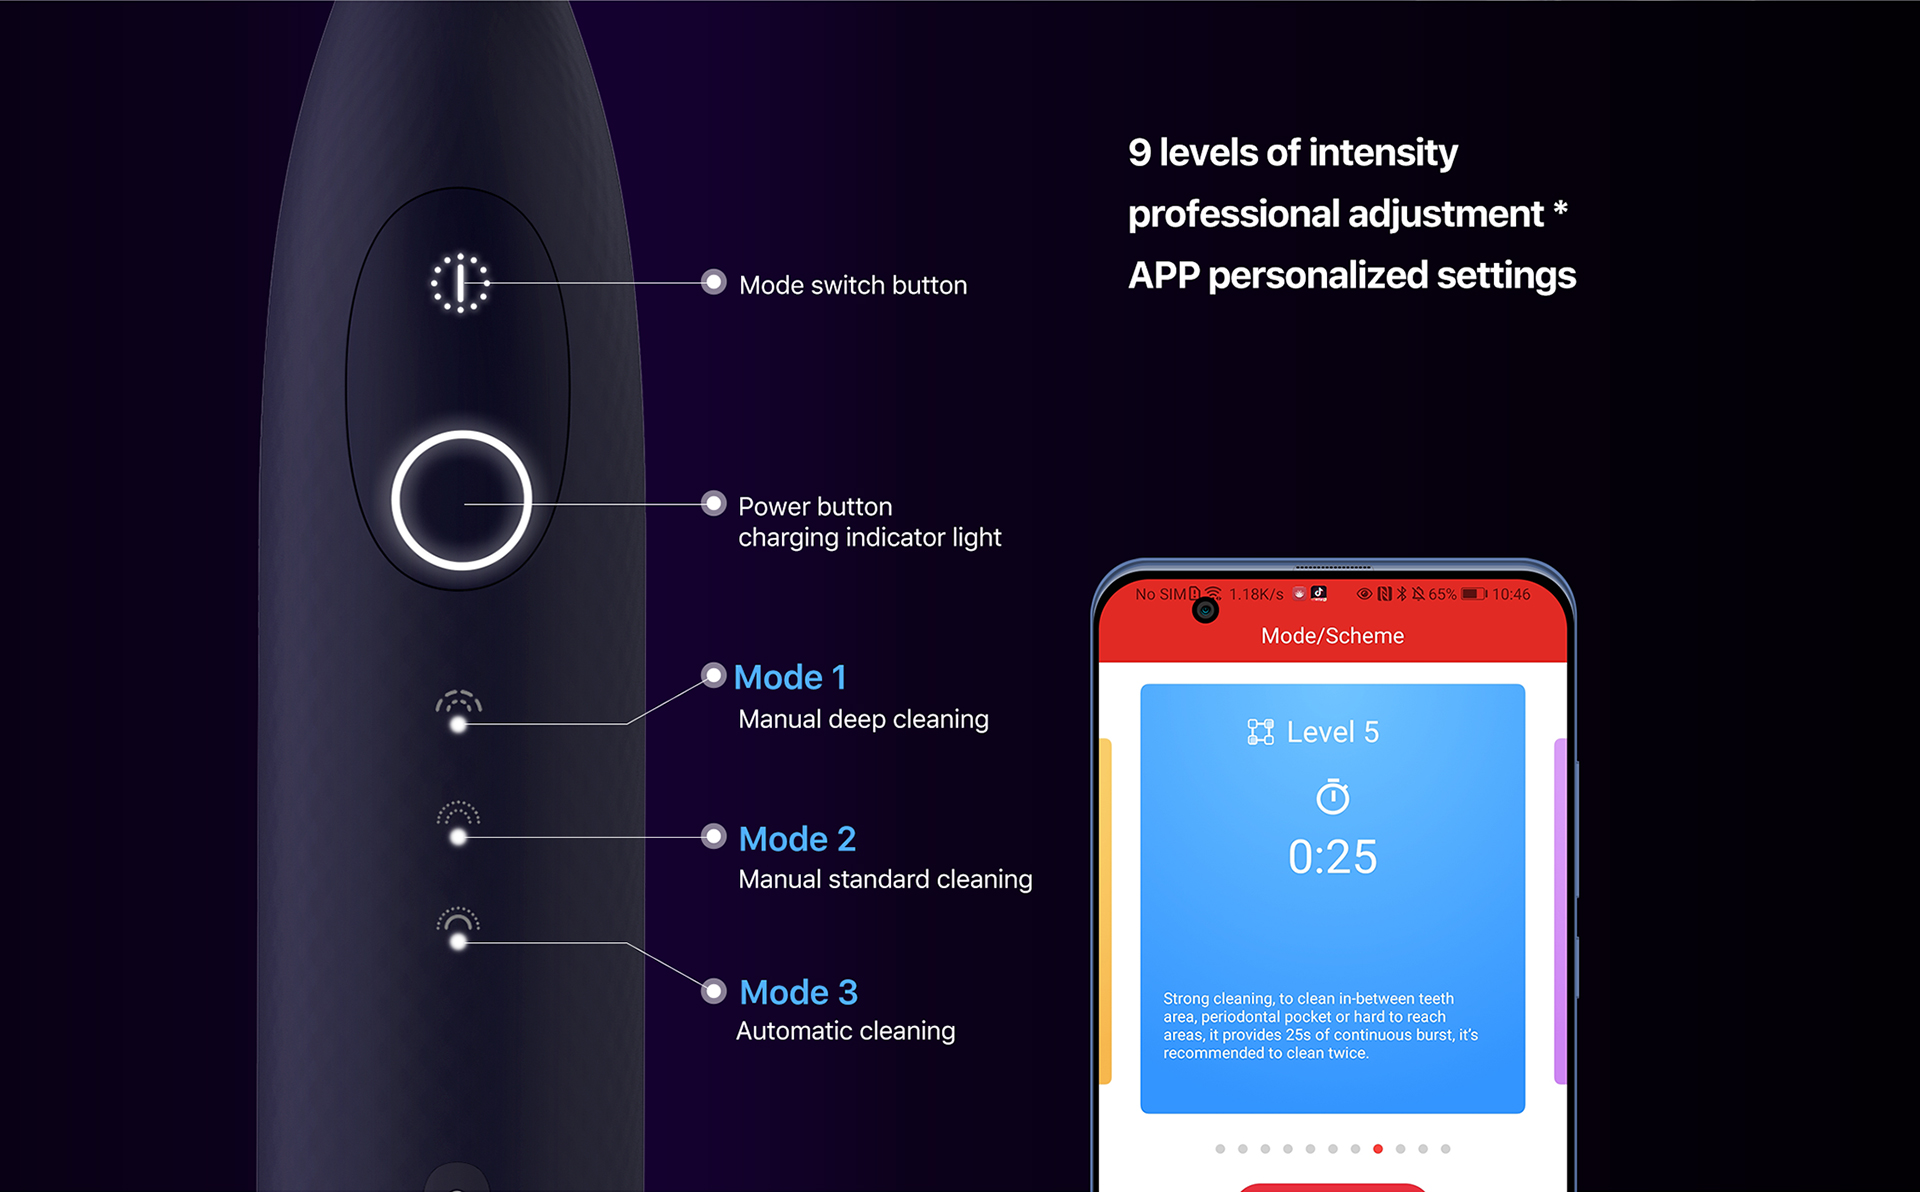 9 levels of intensity professional adjustment APP personalized settings